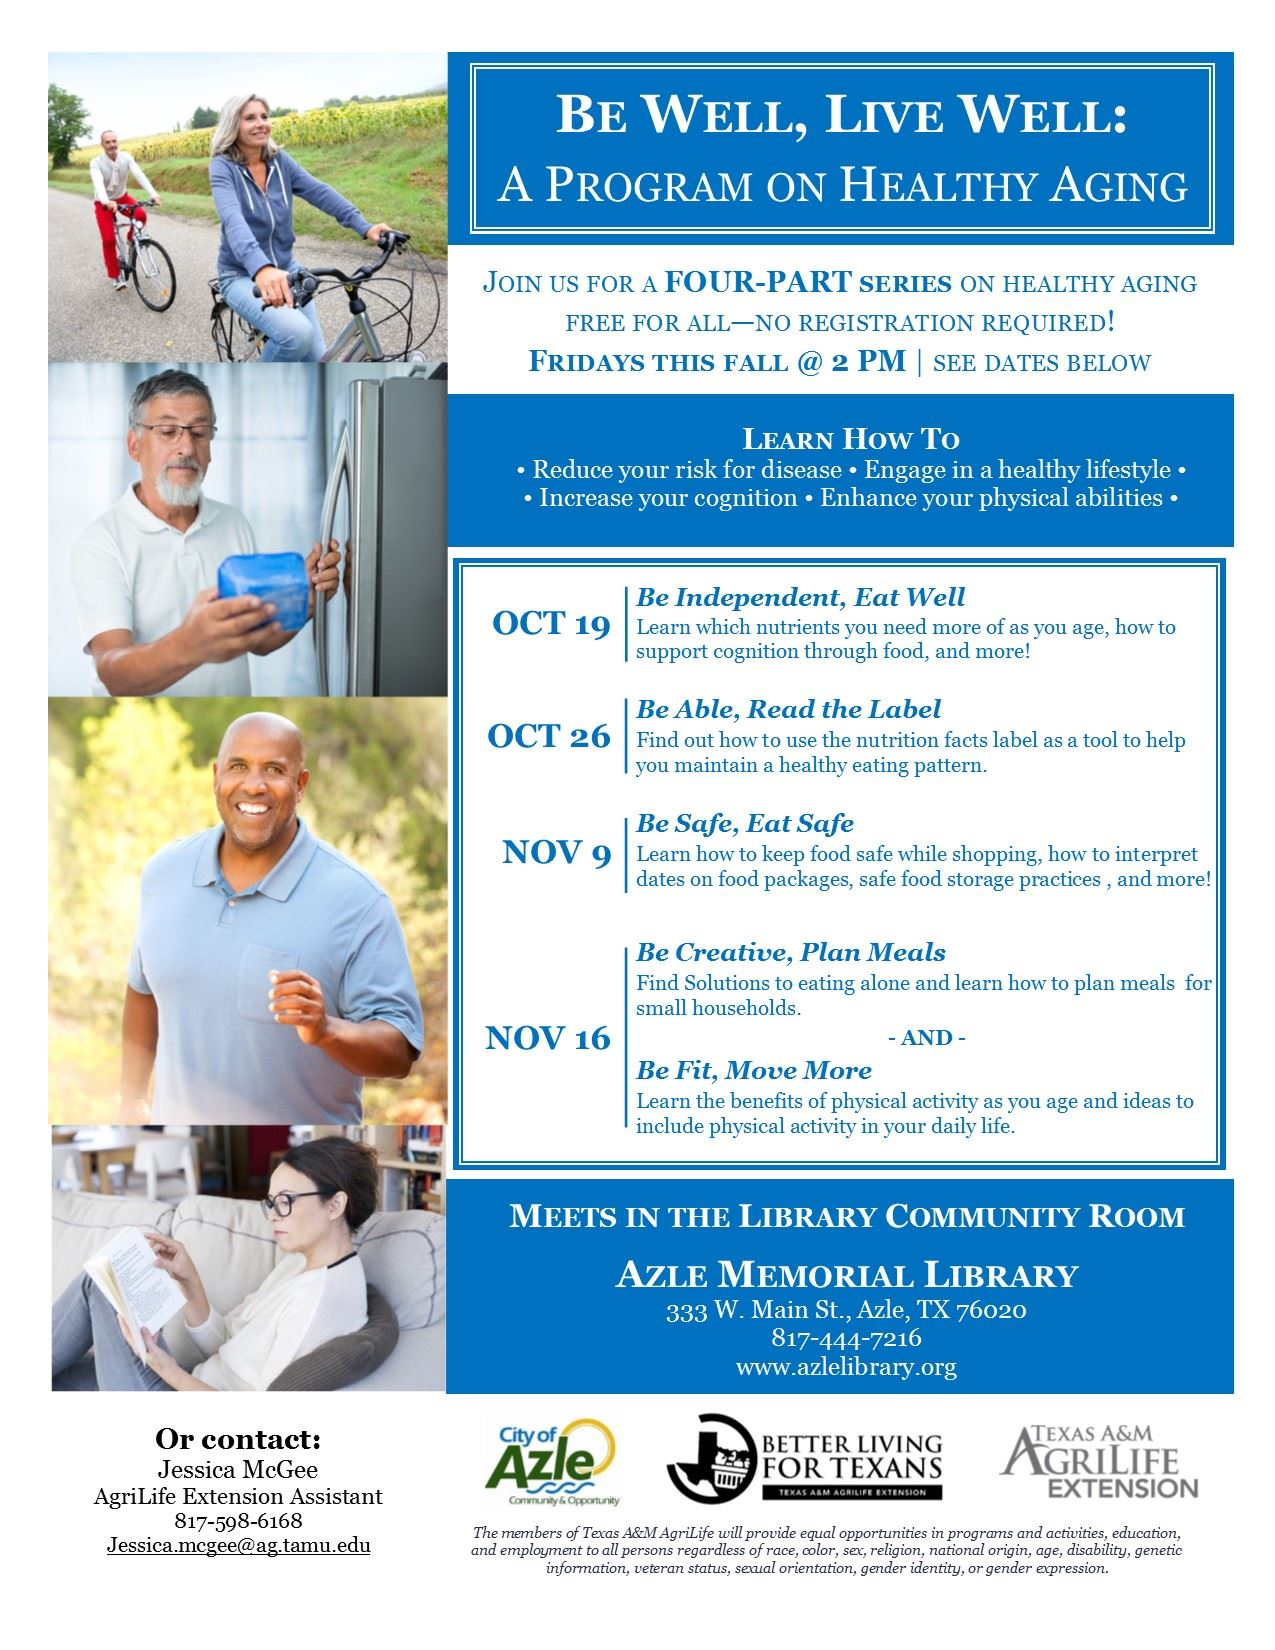 Healthy Aging Flyer-Azle Library - revised